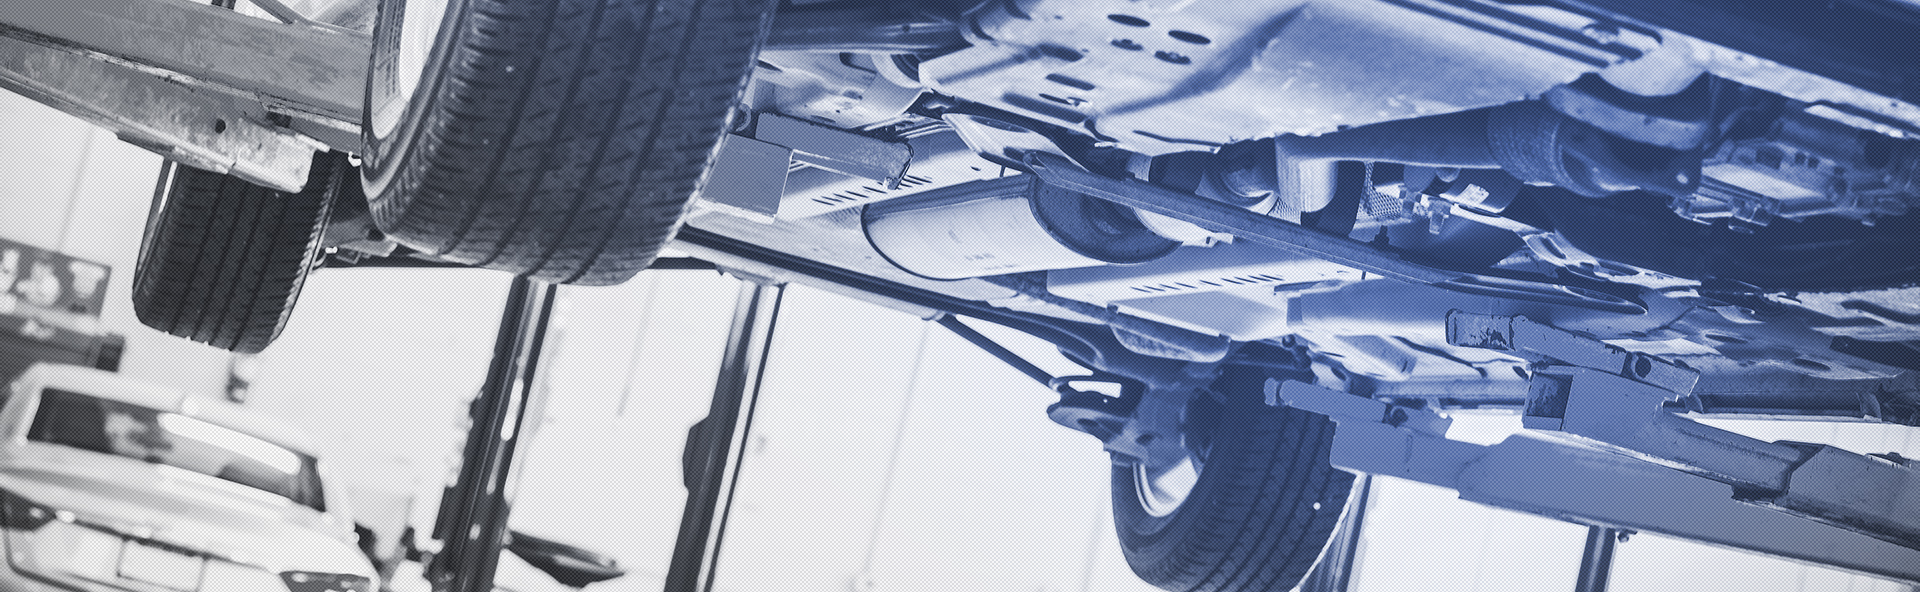 homepage-banner-car-on-lift